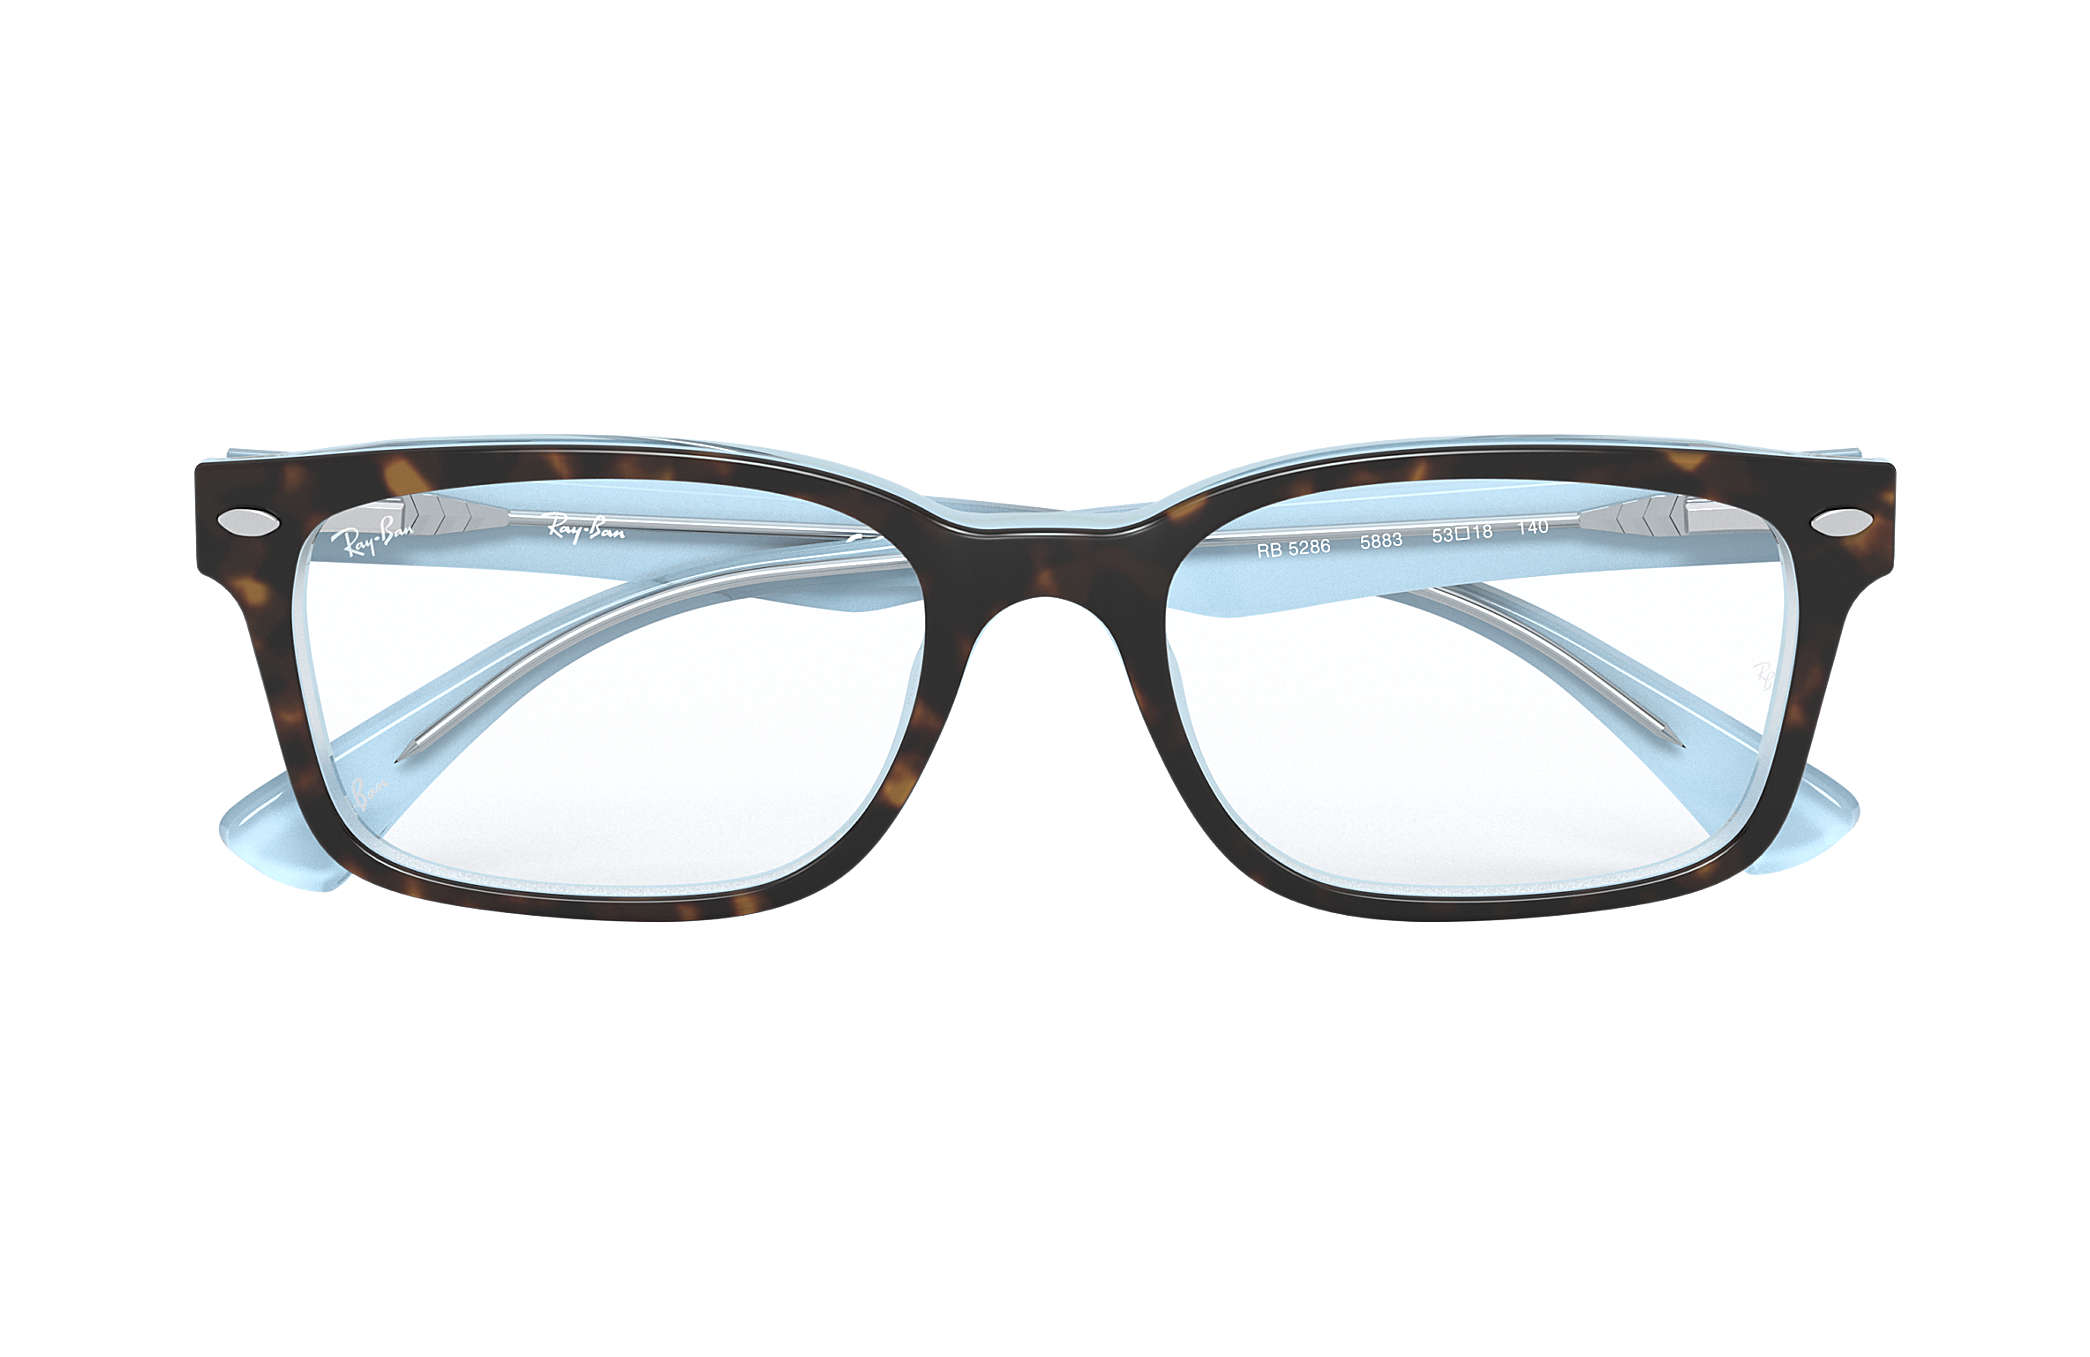 94dcd85f90d Ray-Ban prescription glasses RB5286 Tortoise - Acetate ...